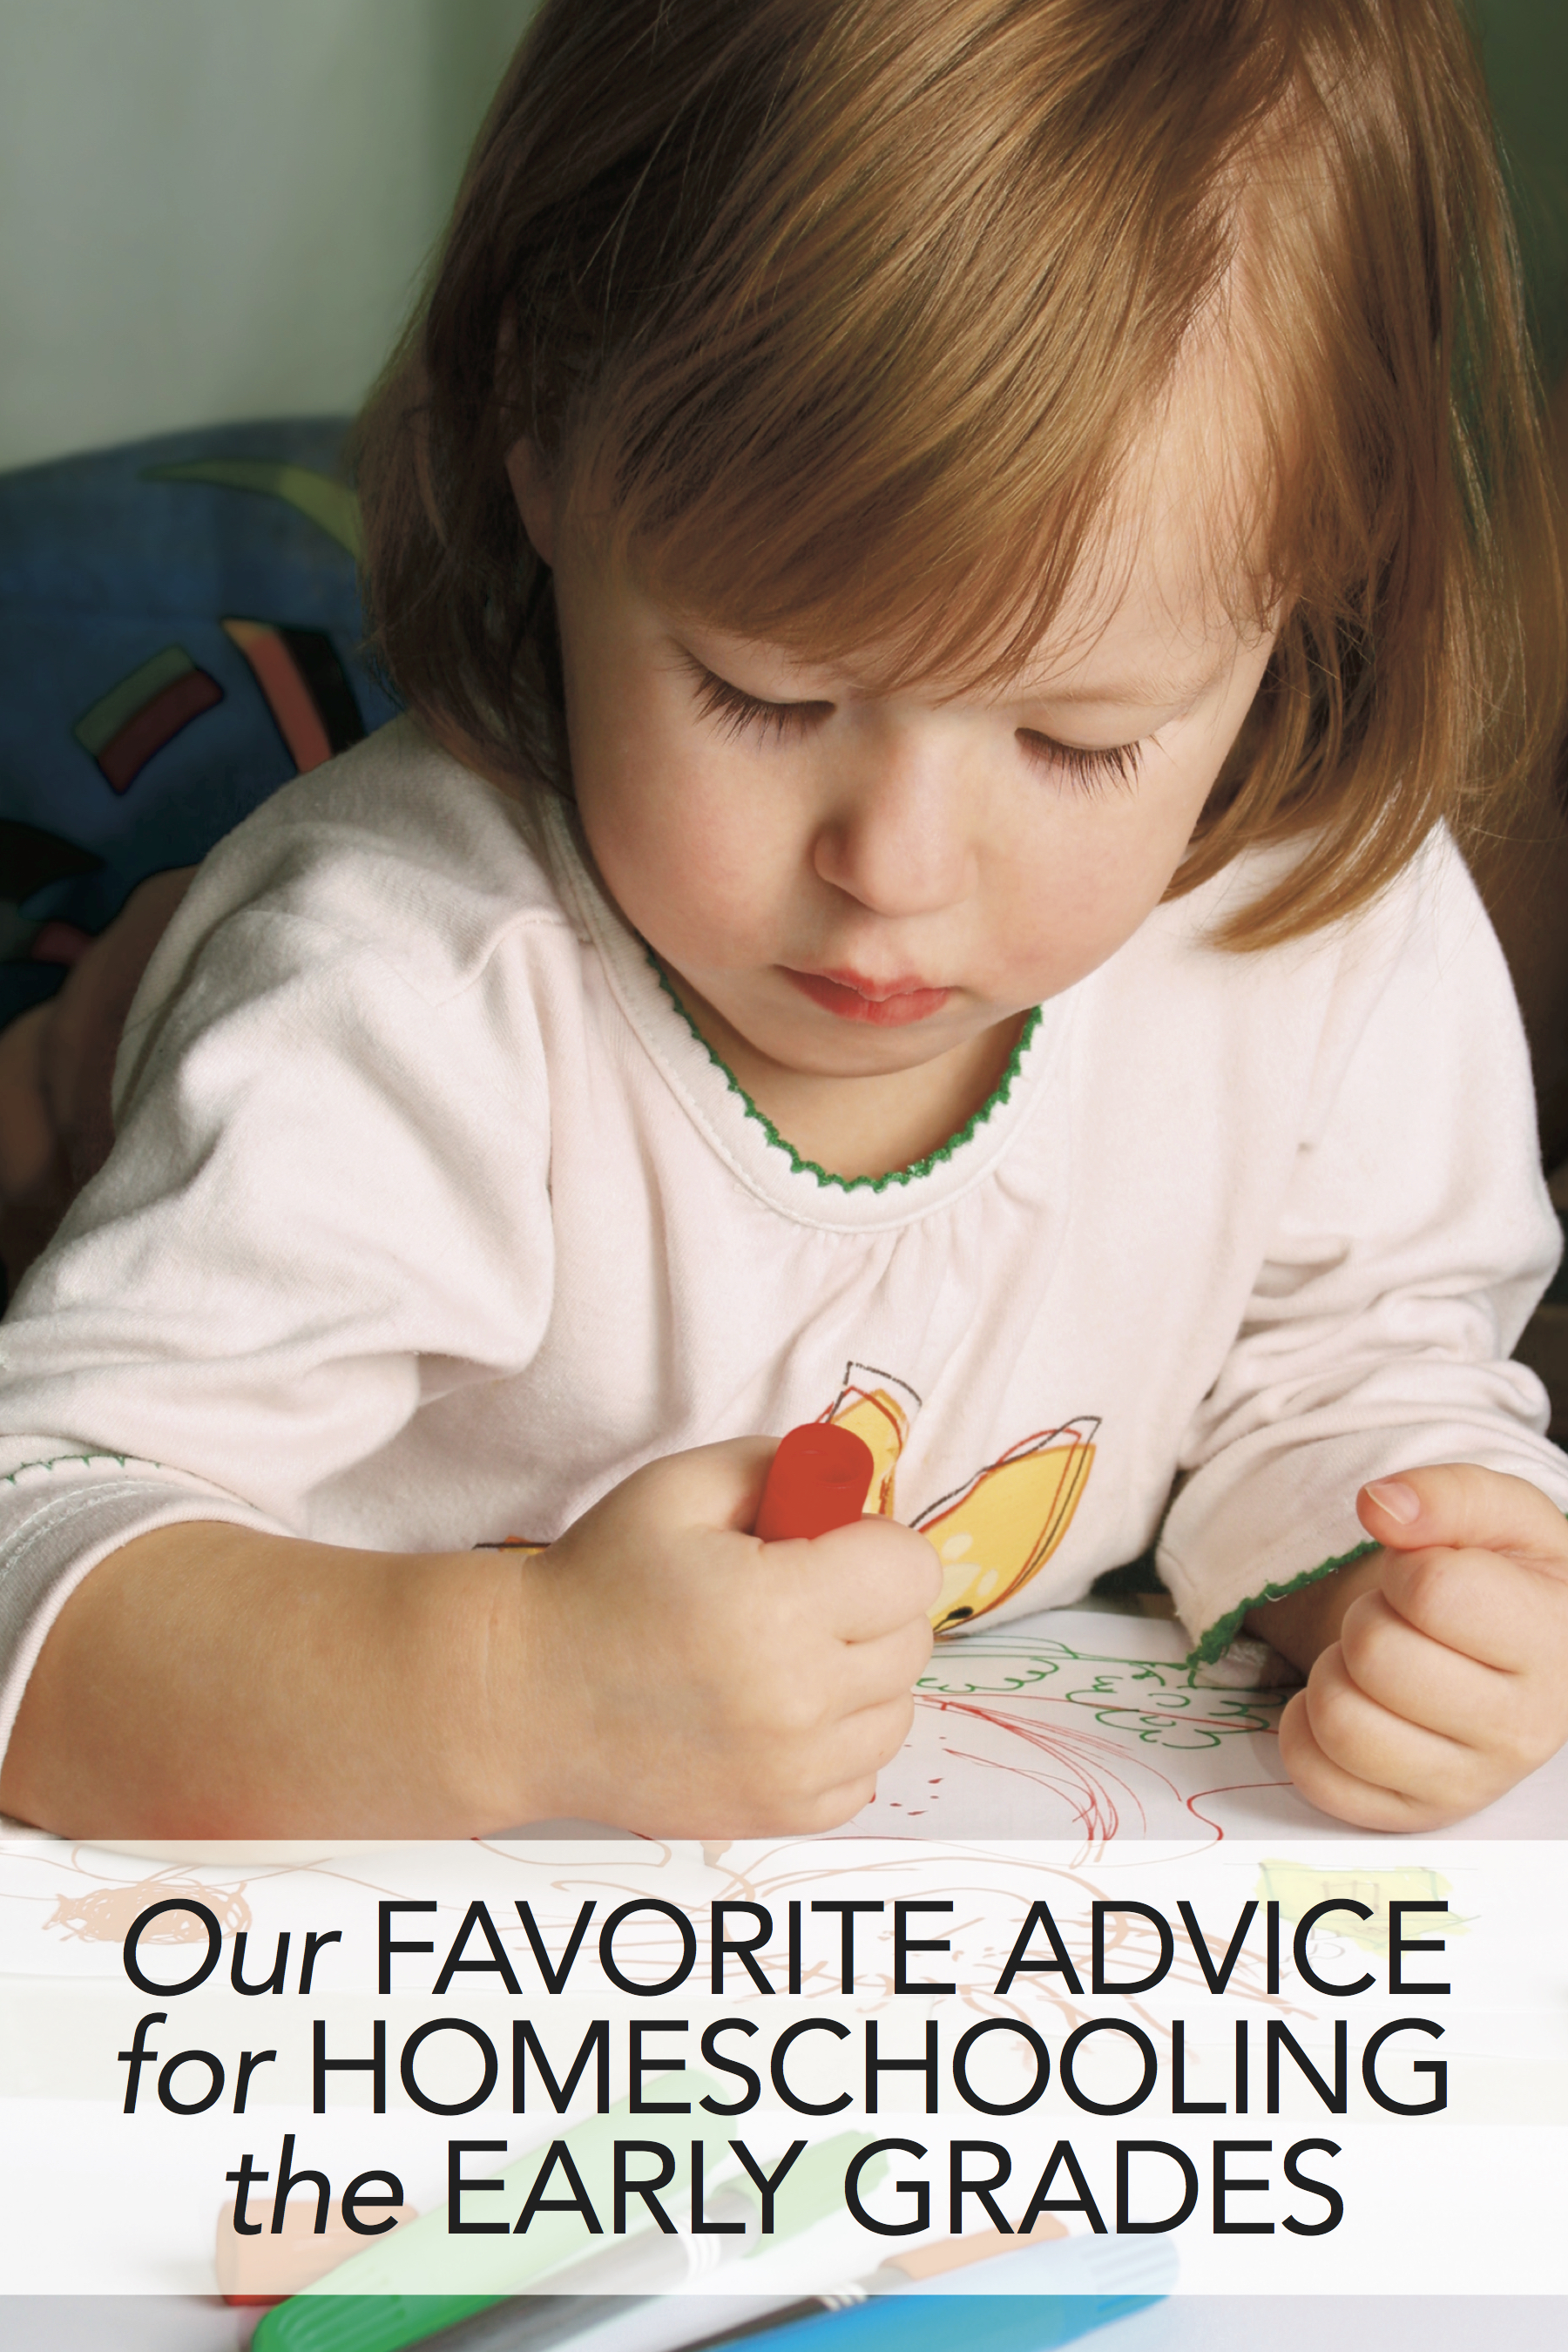 Best of HSL: Our Favorite Advice for Homeschooling the Early Grades